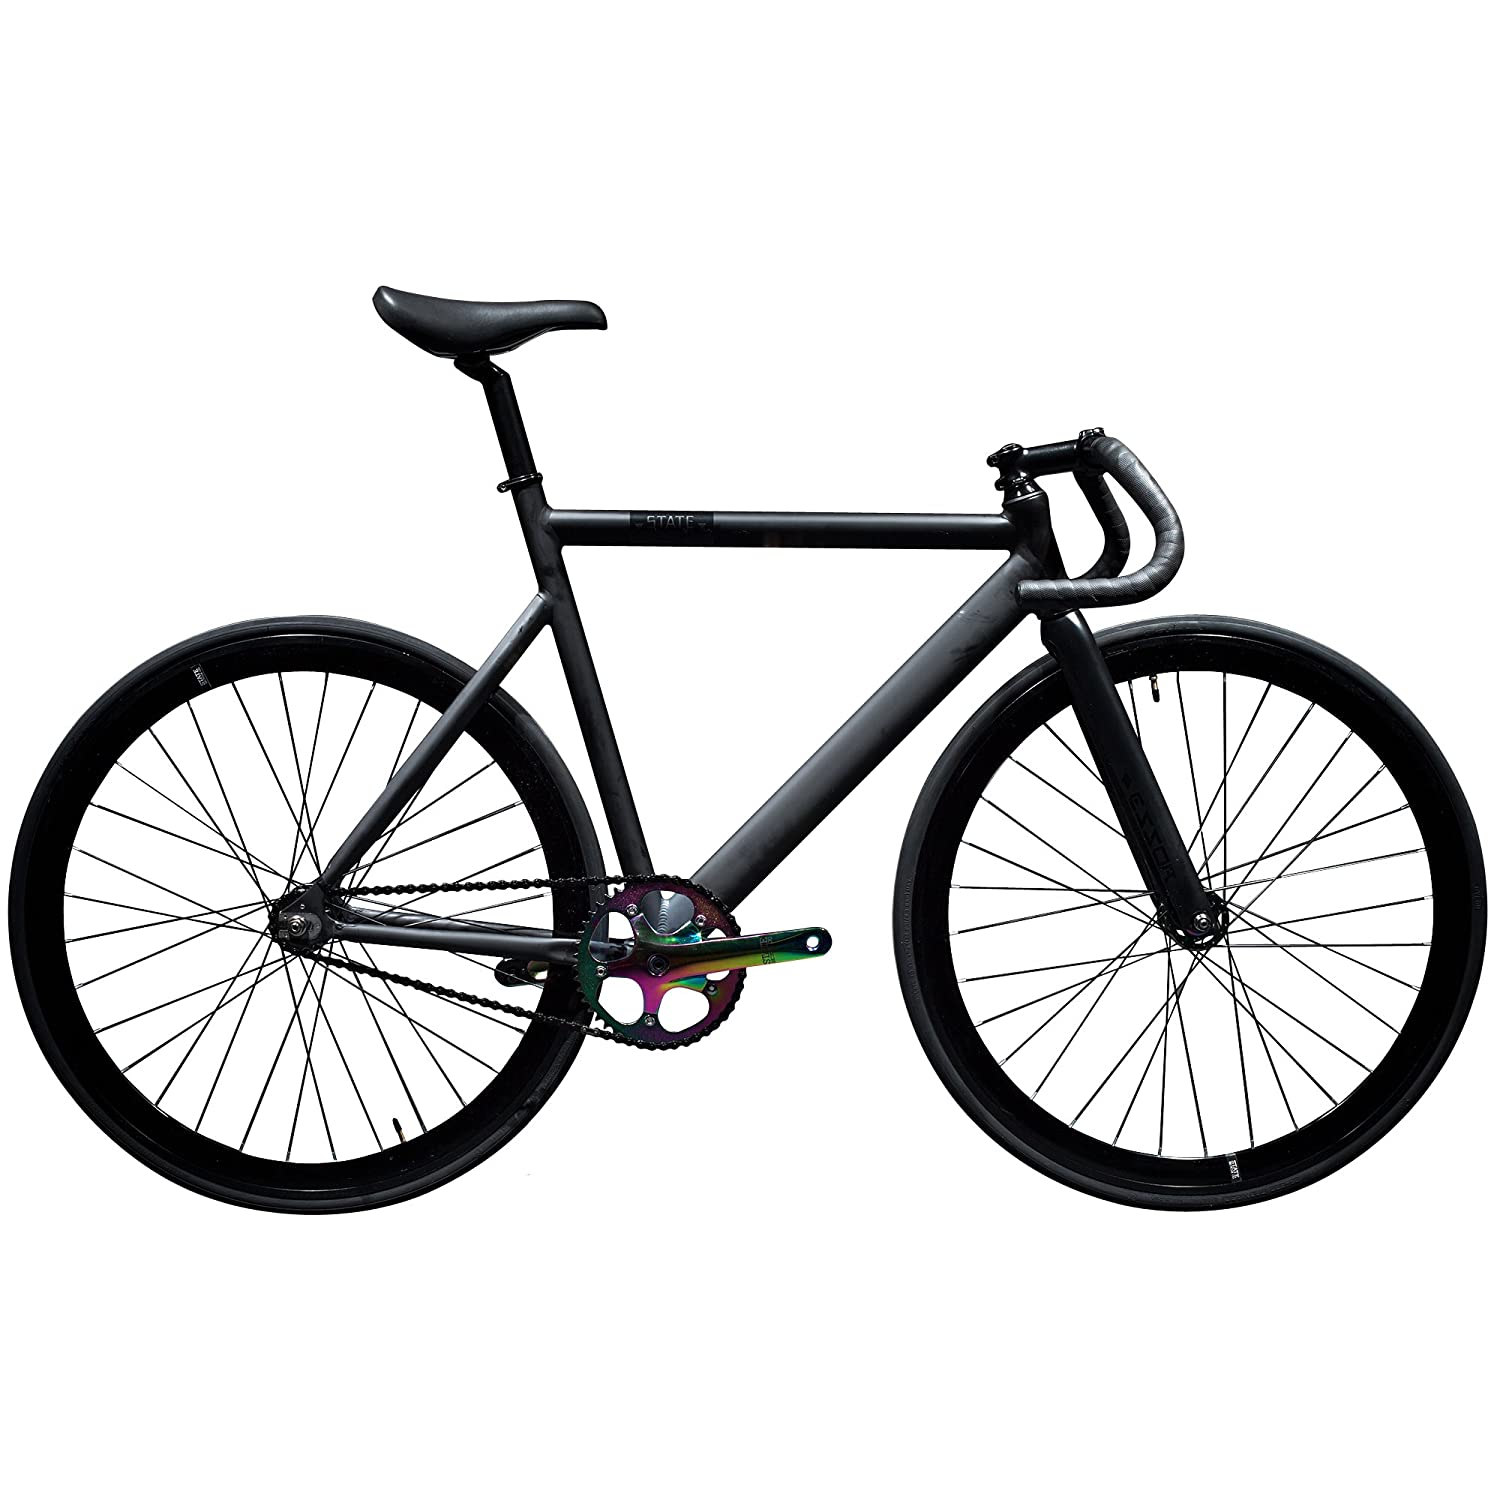 Amazon State Bicycle Black Label 6061 Aluminum Fixed Gear Bike Sports & Outdoors